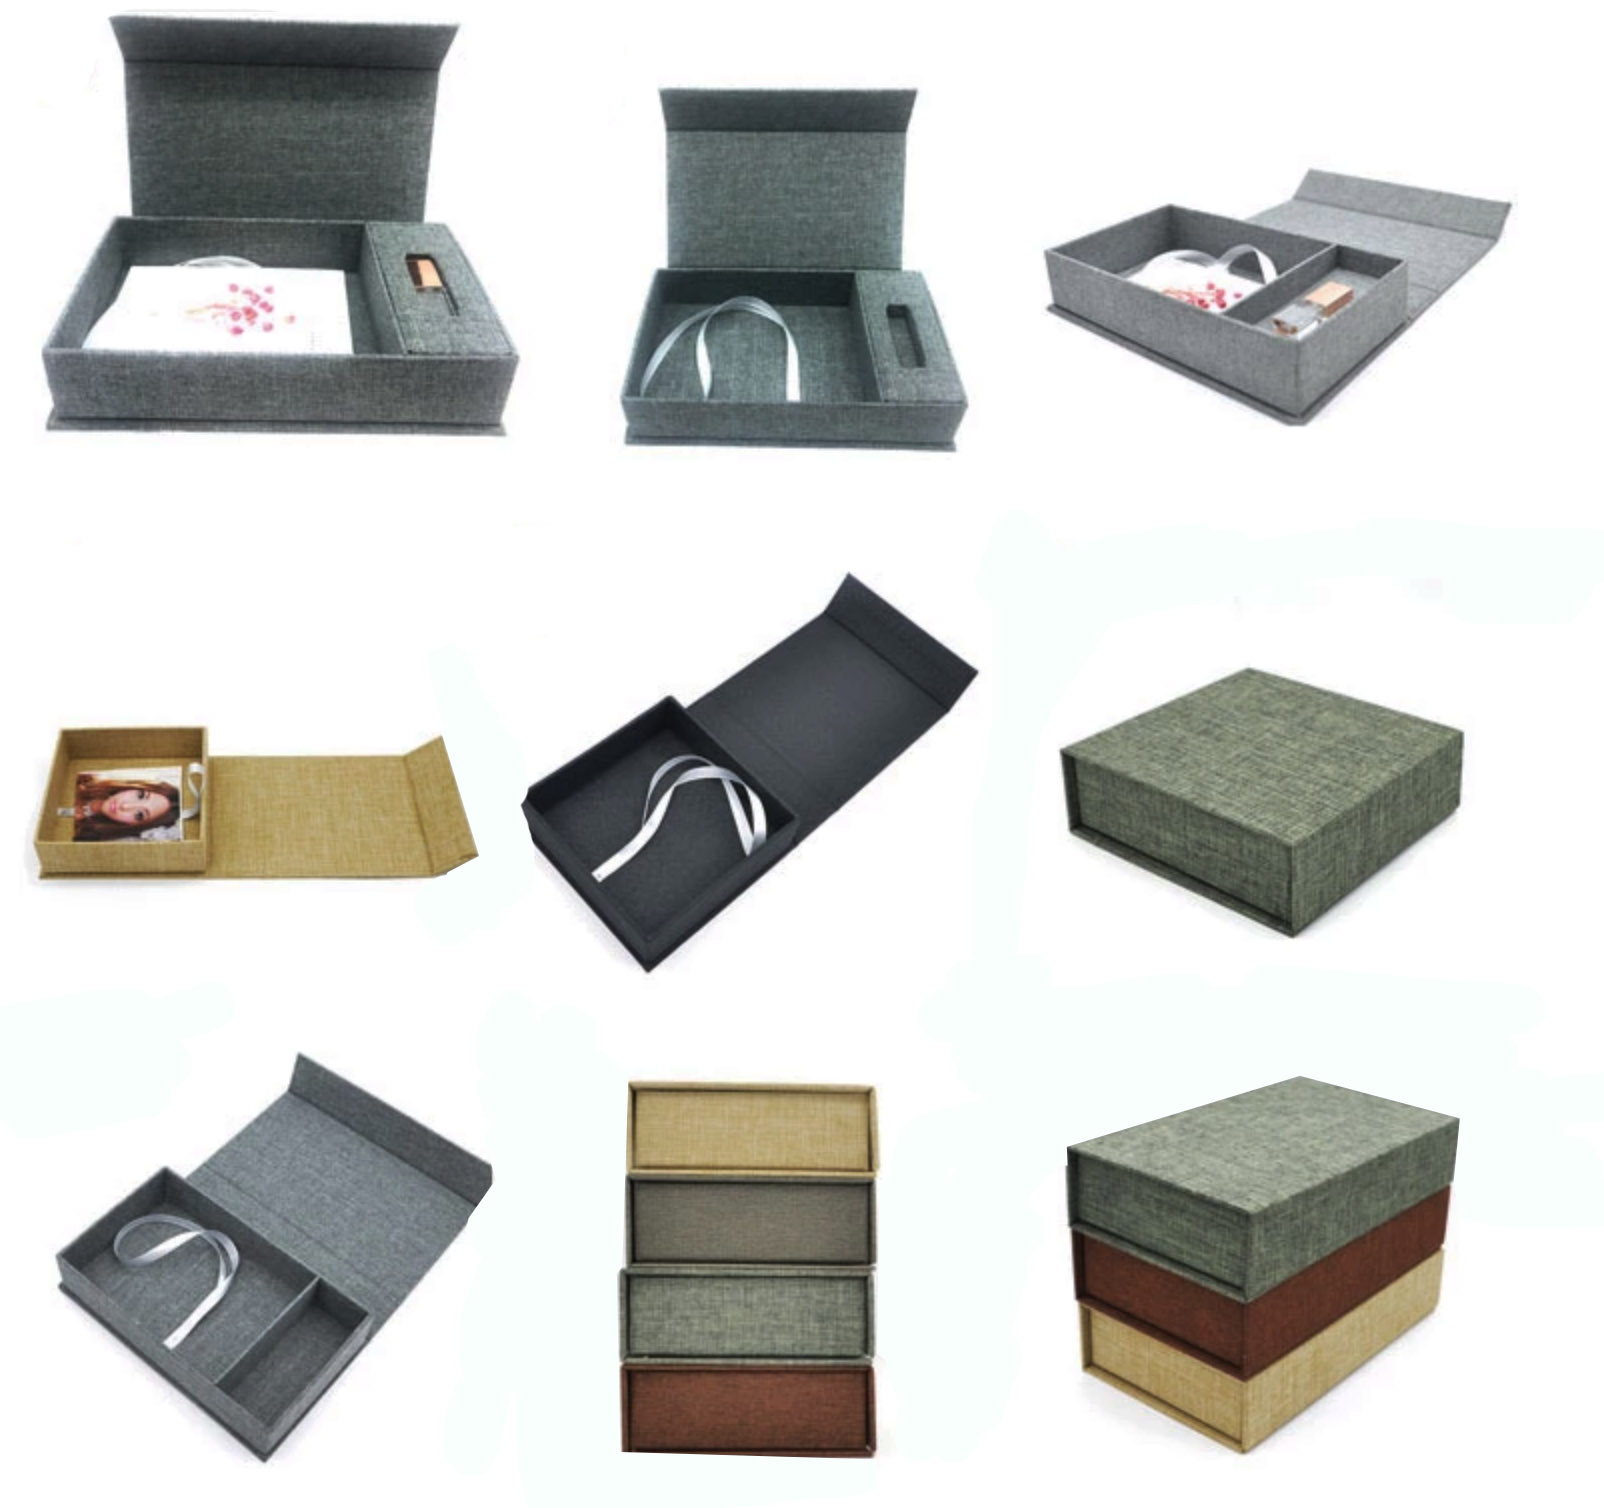 Variations of our stylish 100% linen USB boxes